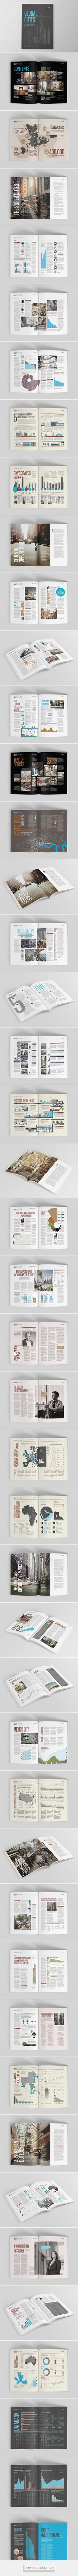 Knight Frank - Global Cities Report on Behance - created via https://pinthemall.net